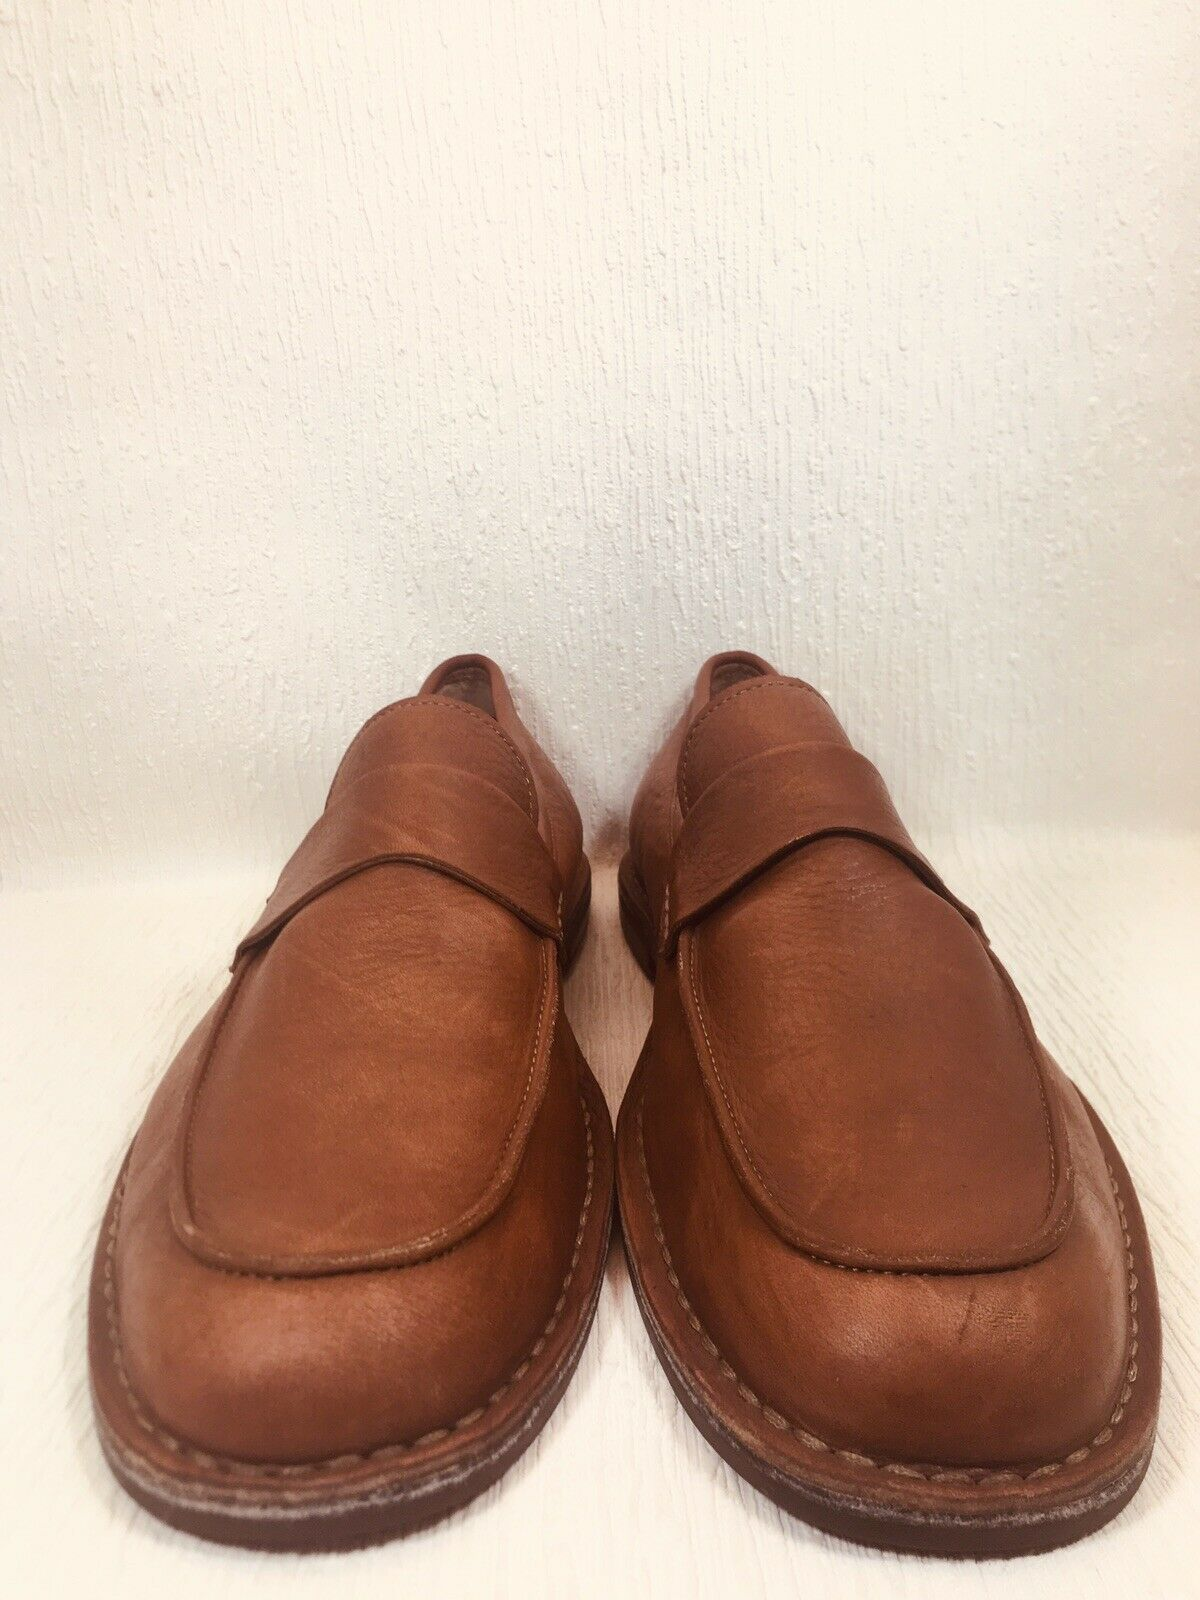 Rare Fossil Mens Tan Pebbled Aniline Leather Loafers Driving Moccasins Sz 13M